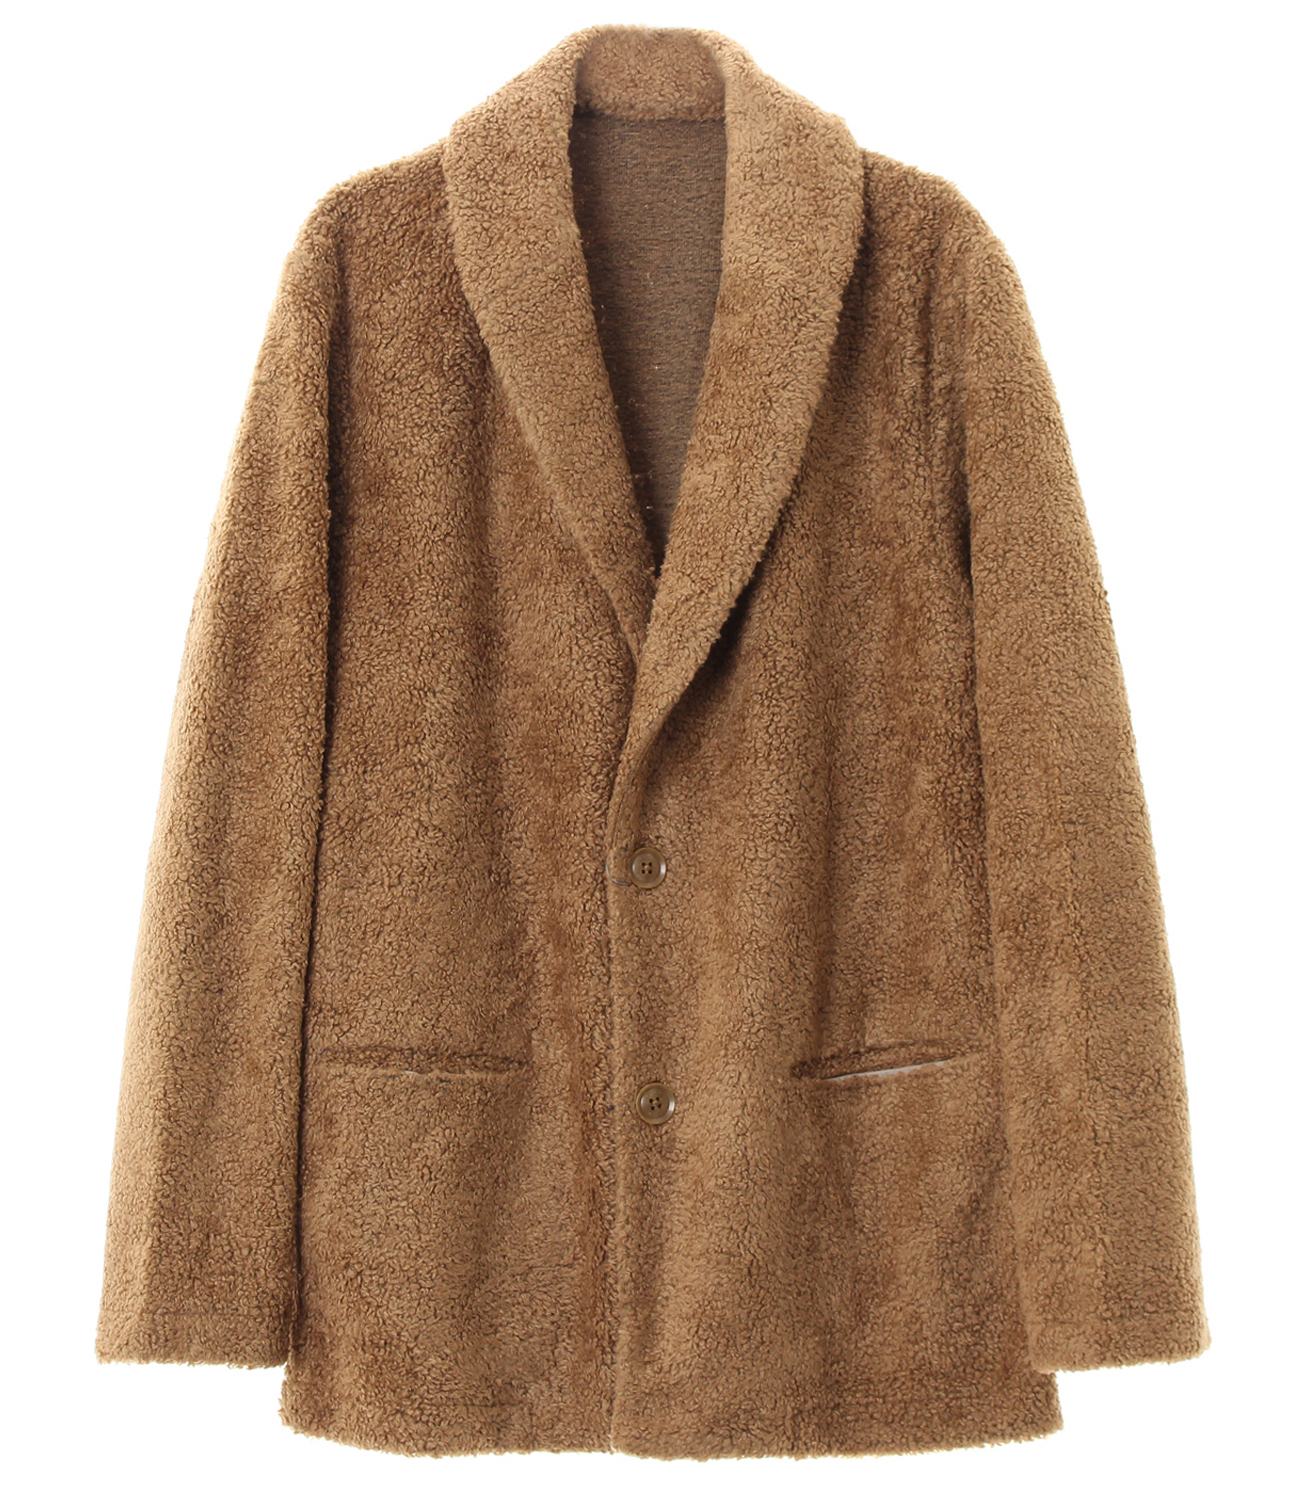 men's light boa shawl collar cardigan 詳細画像 camel 1